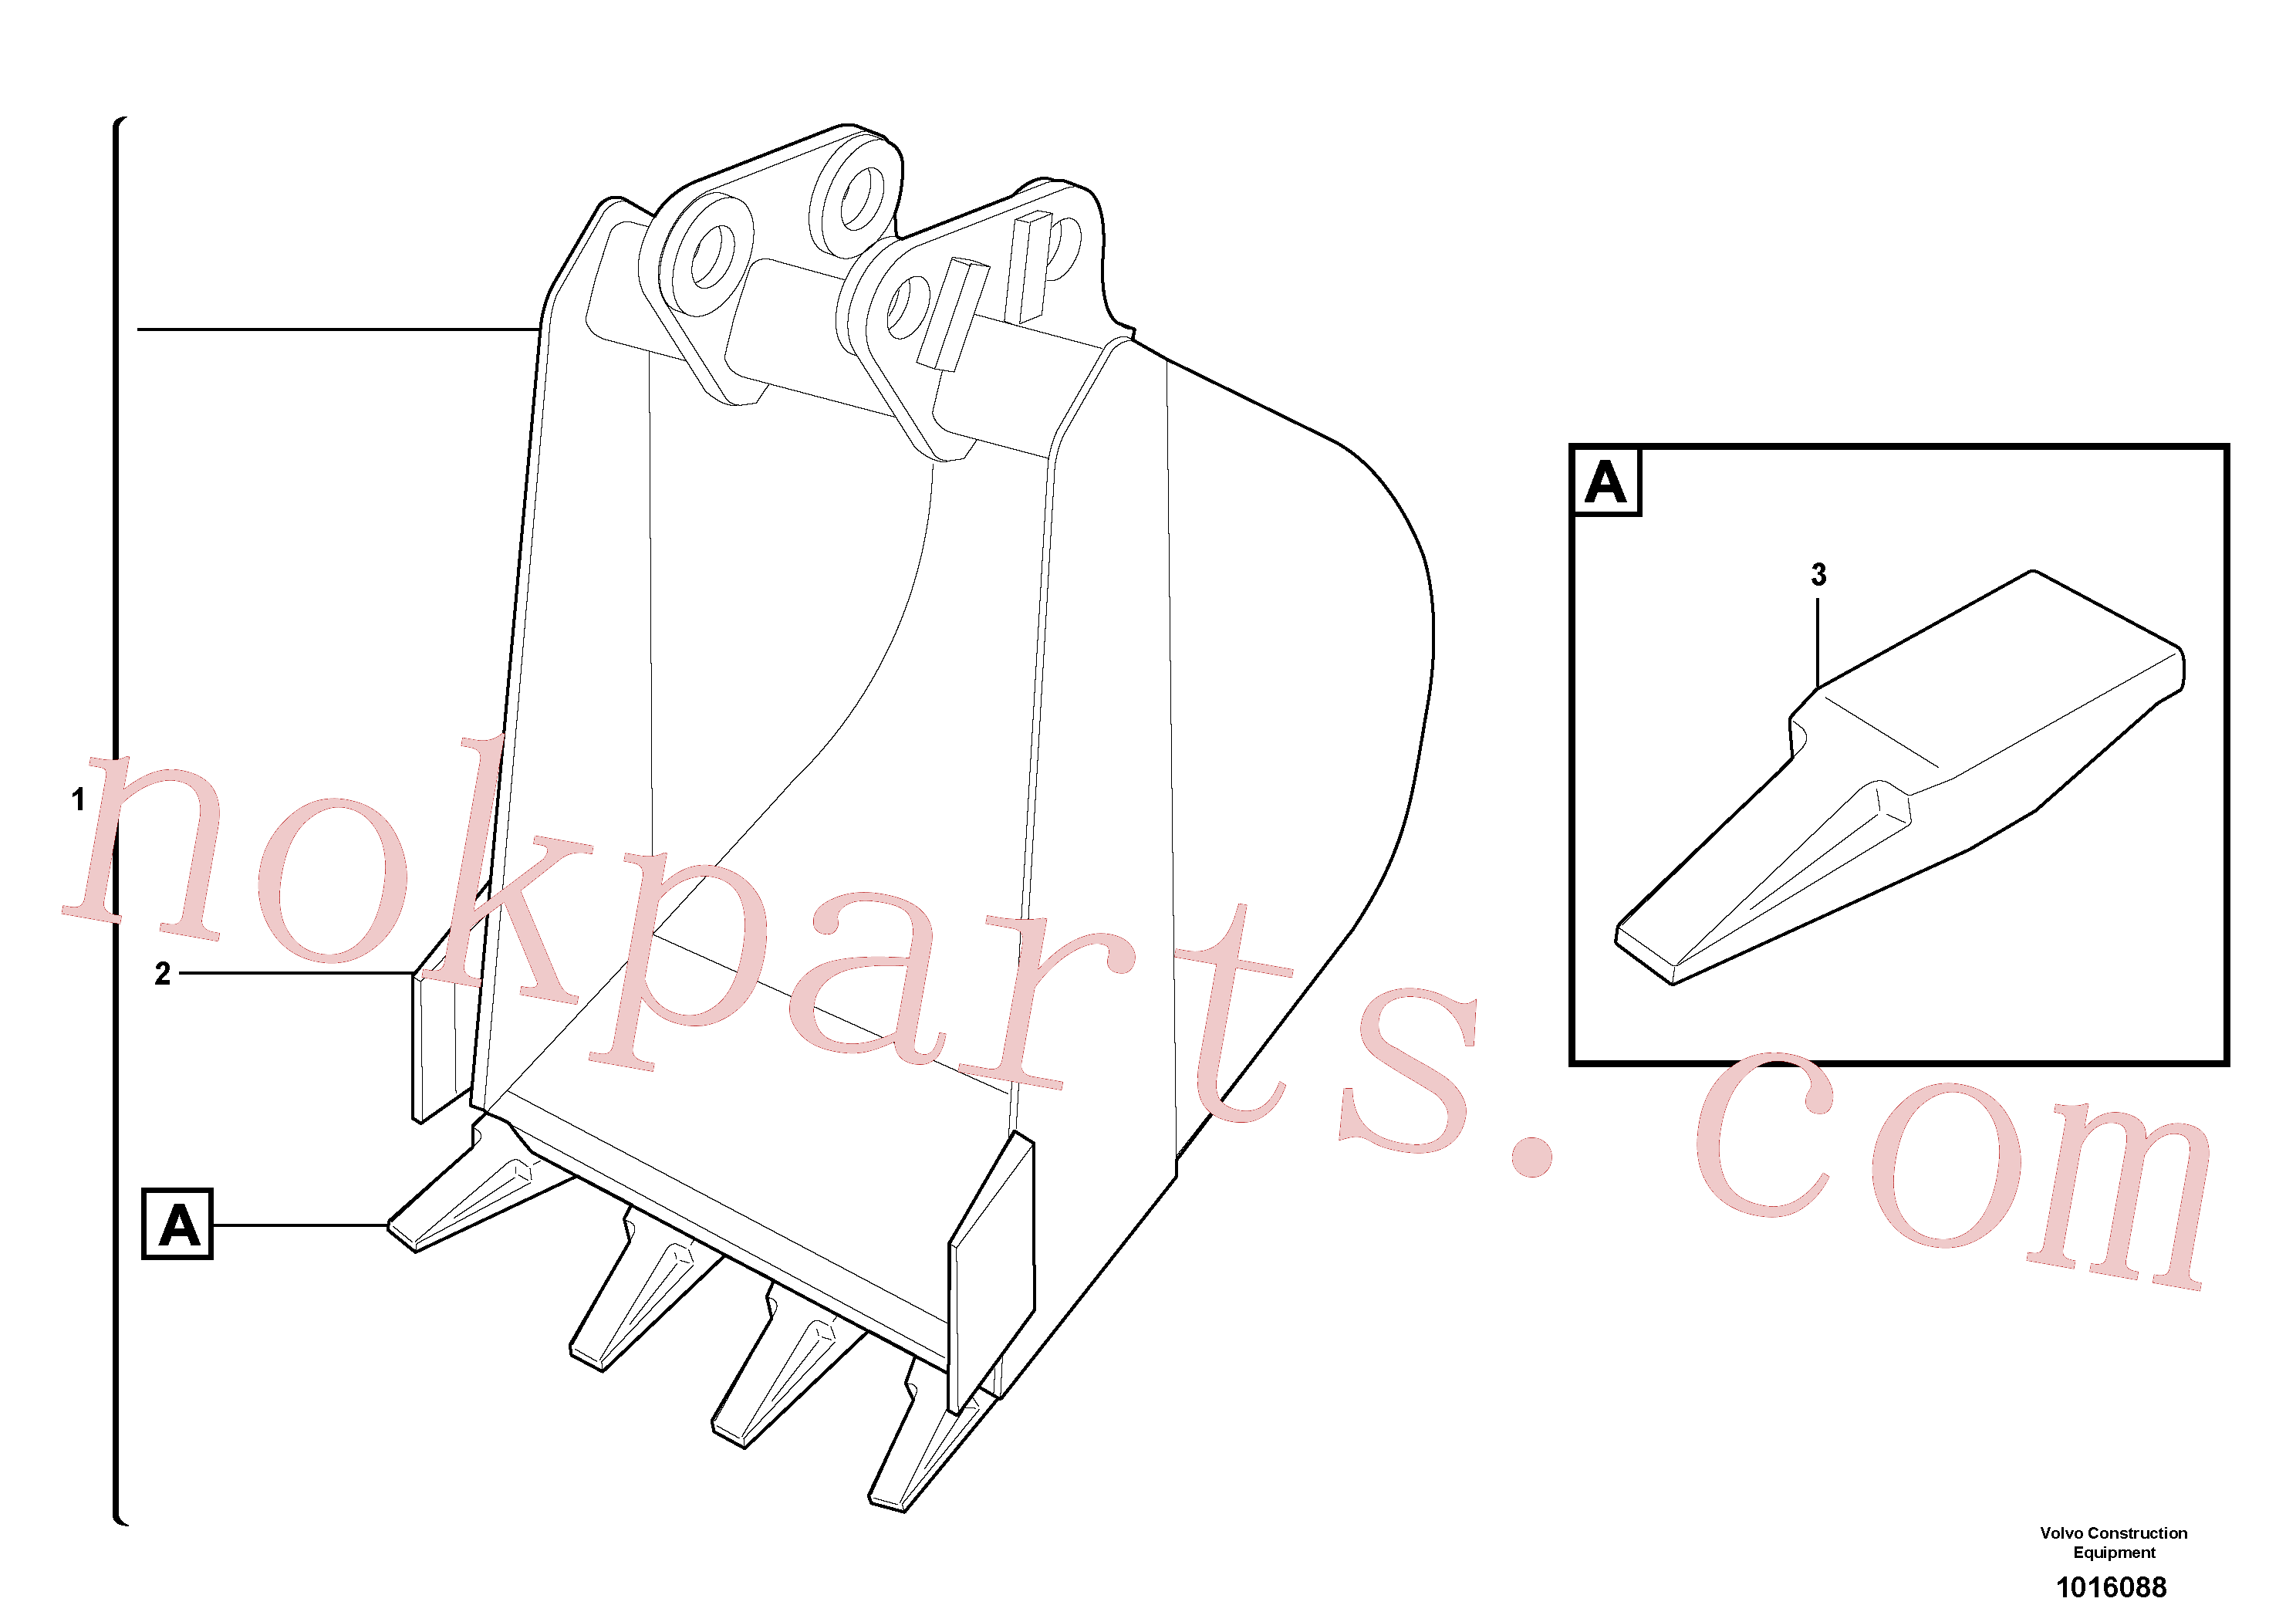 VOE11806652 for Volvo Bucket(1016088 assembly)